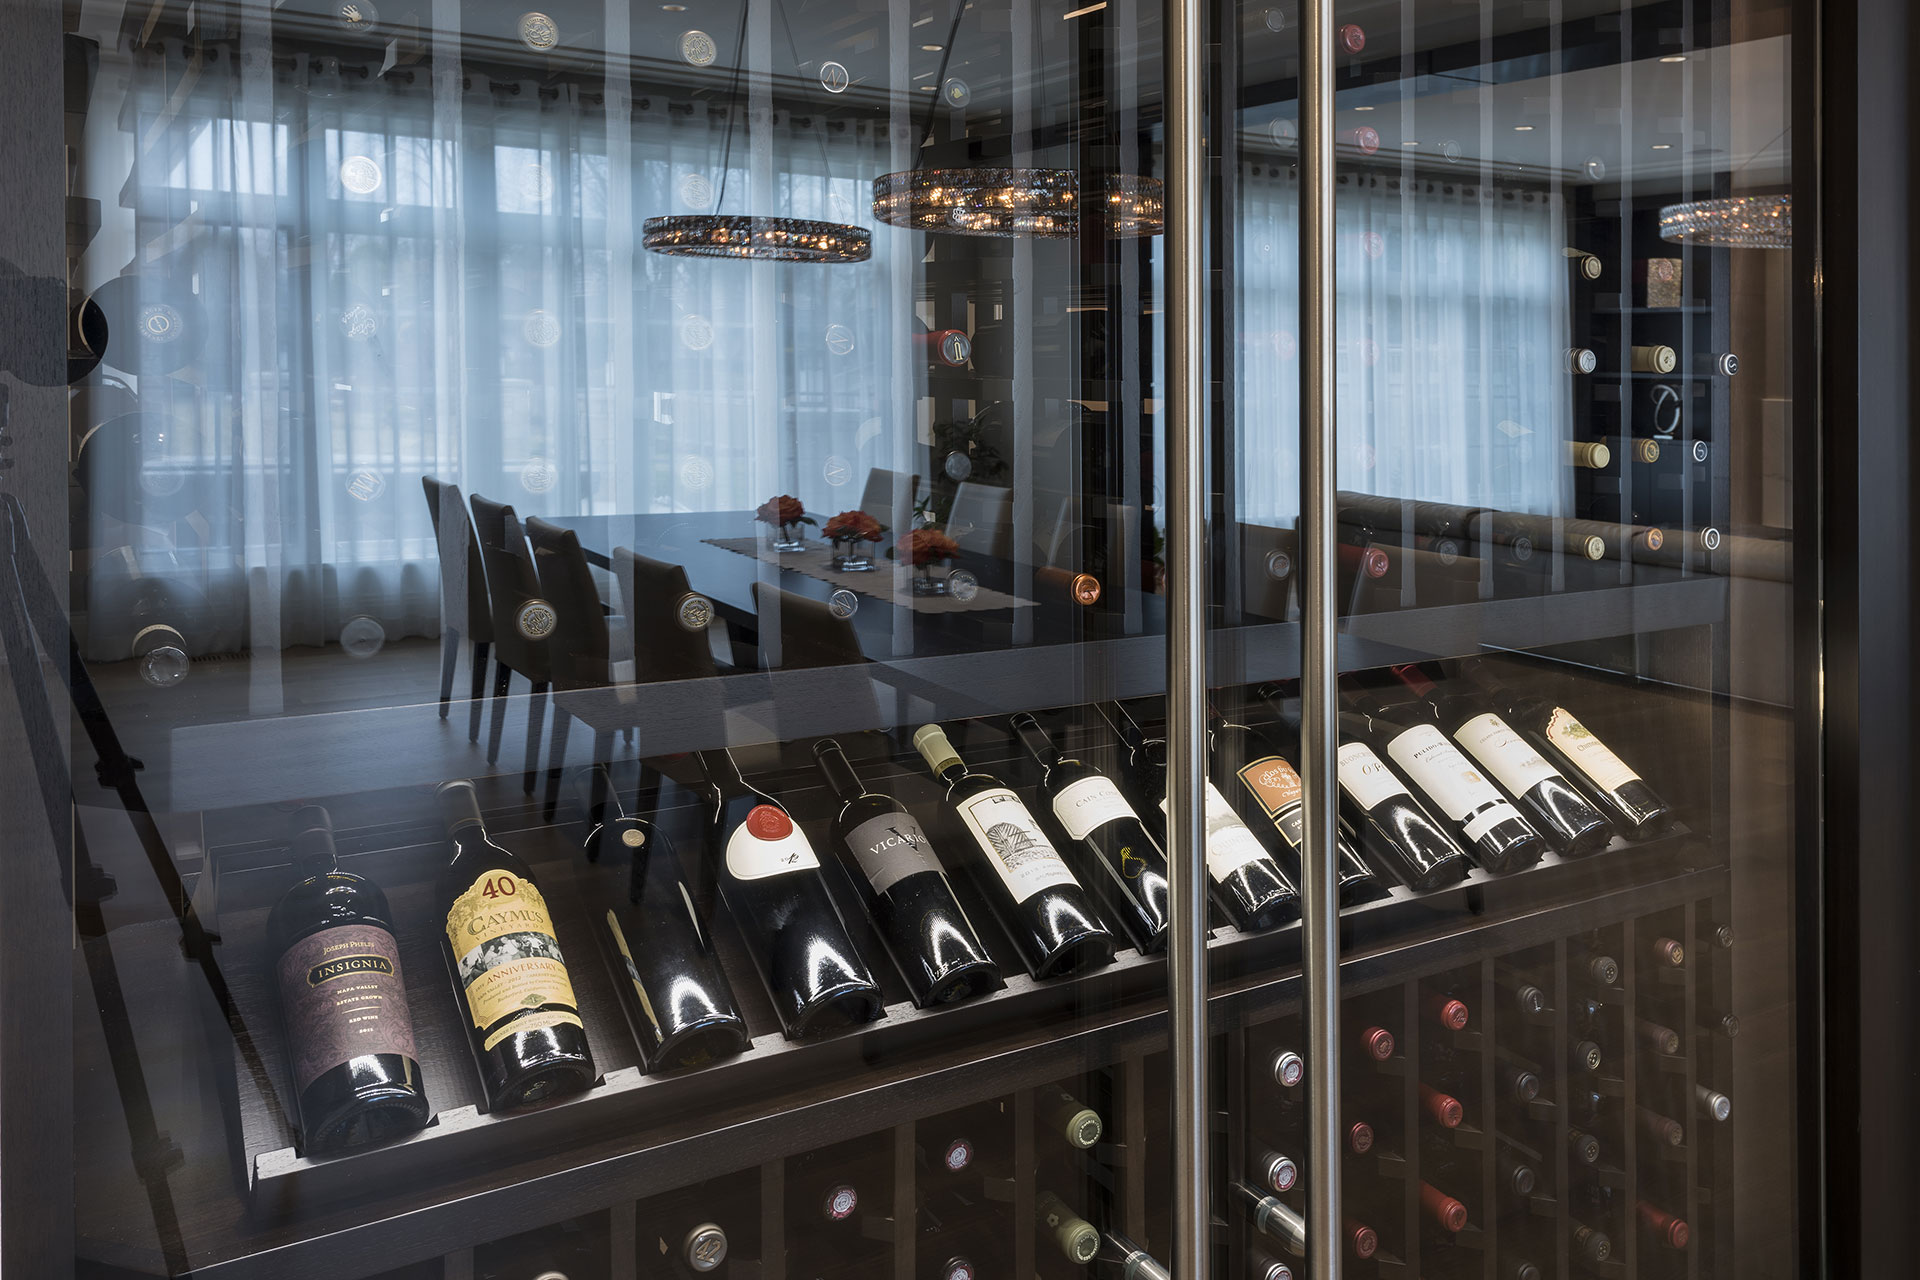 Custom Refrigerated Wine Cabinet U2013 North Shore Modern Home U2013 Featured  Project   Featured Project By